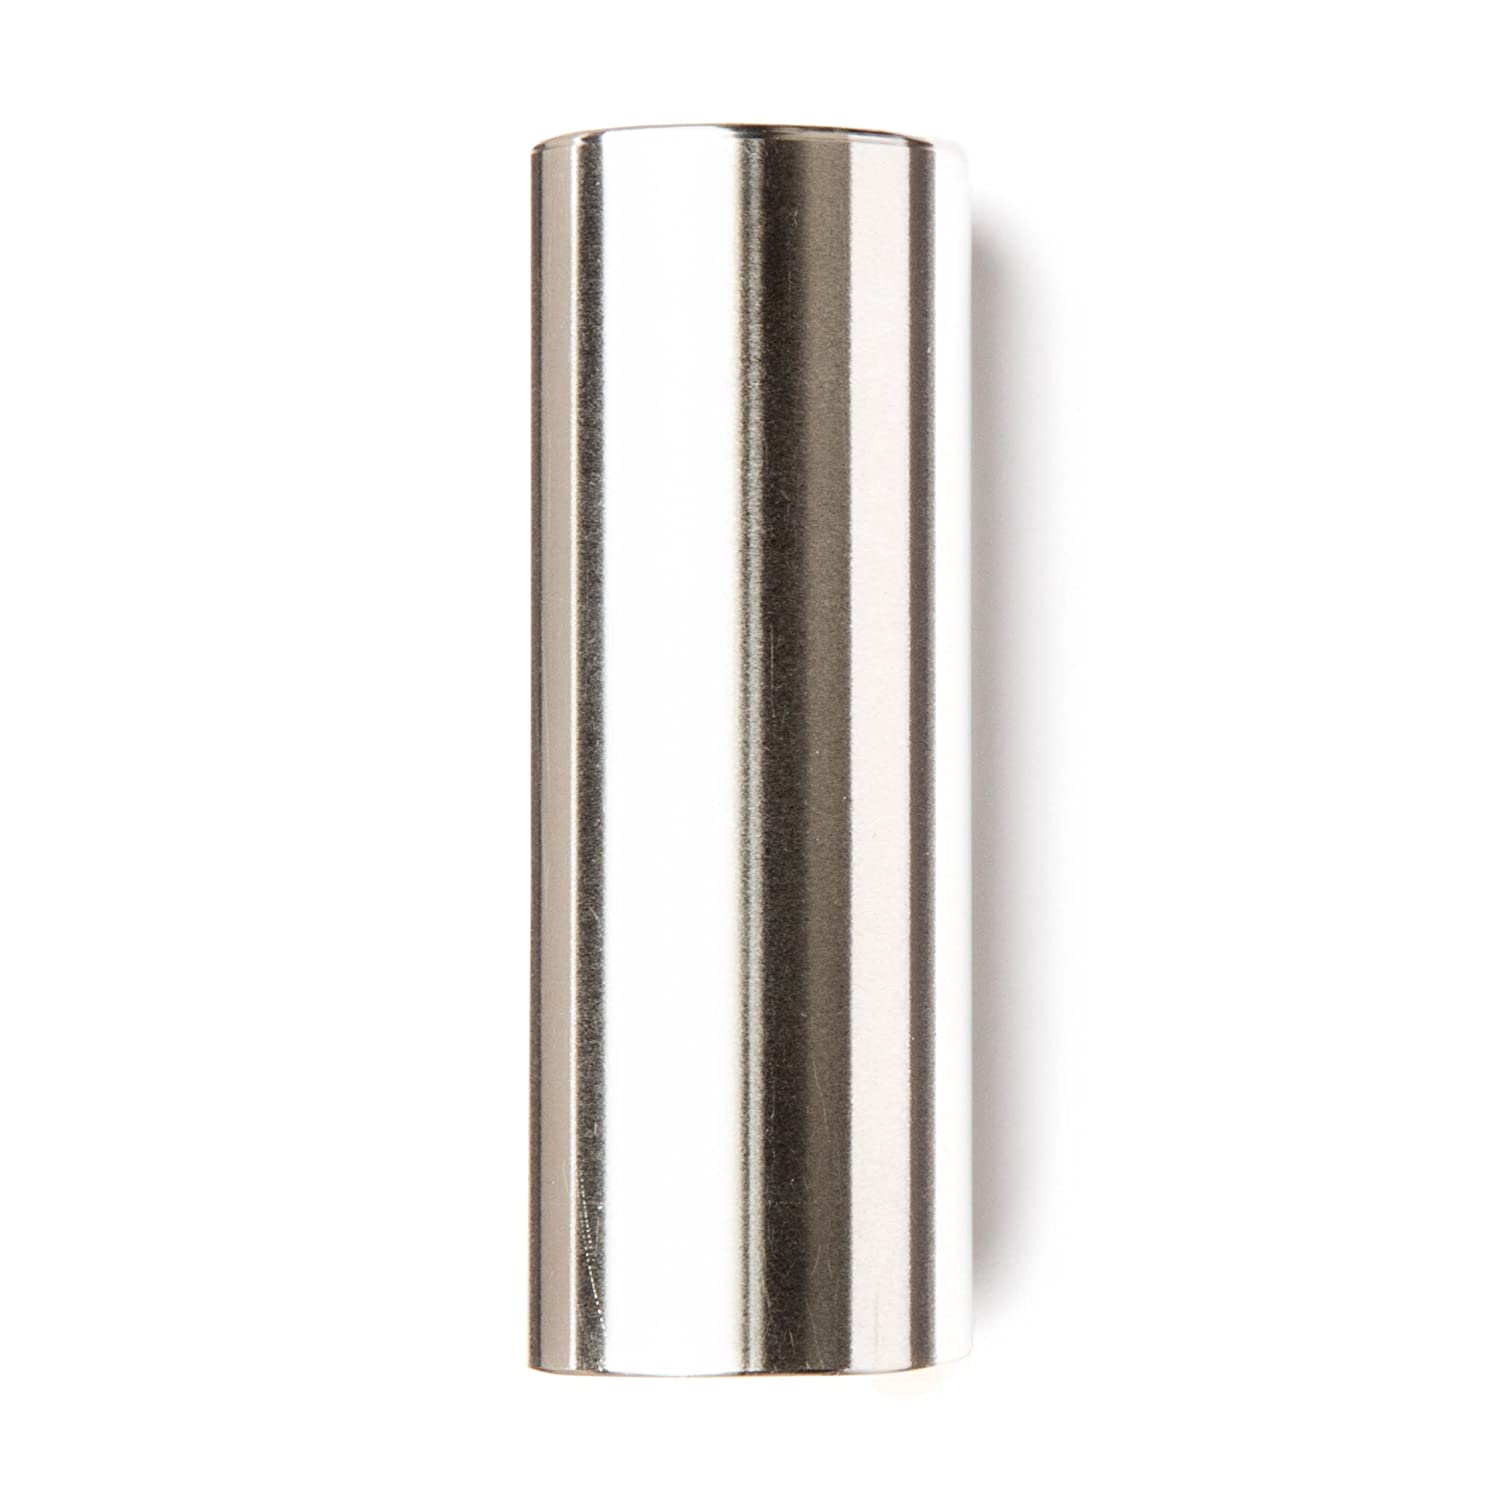 Dunlop 225 Stainless Steel Slide, Small 34225000001